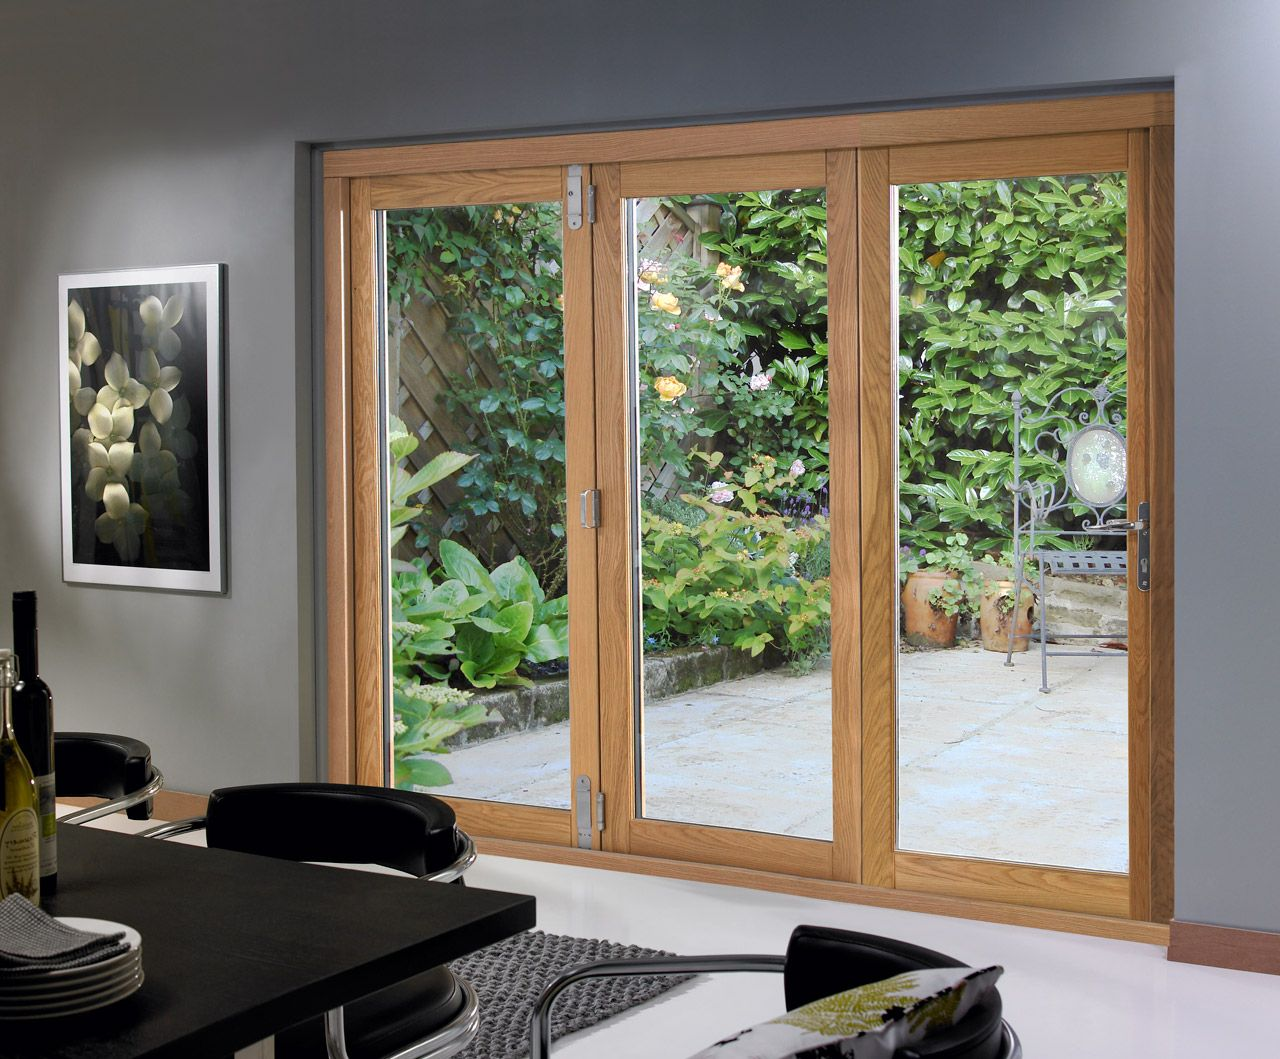 bifold french doors ideas ? dpicking doors : installing bifold ... - Patio Door Ideas